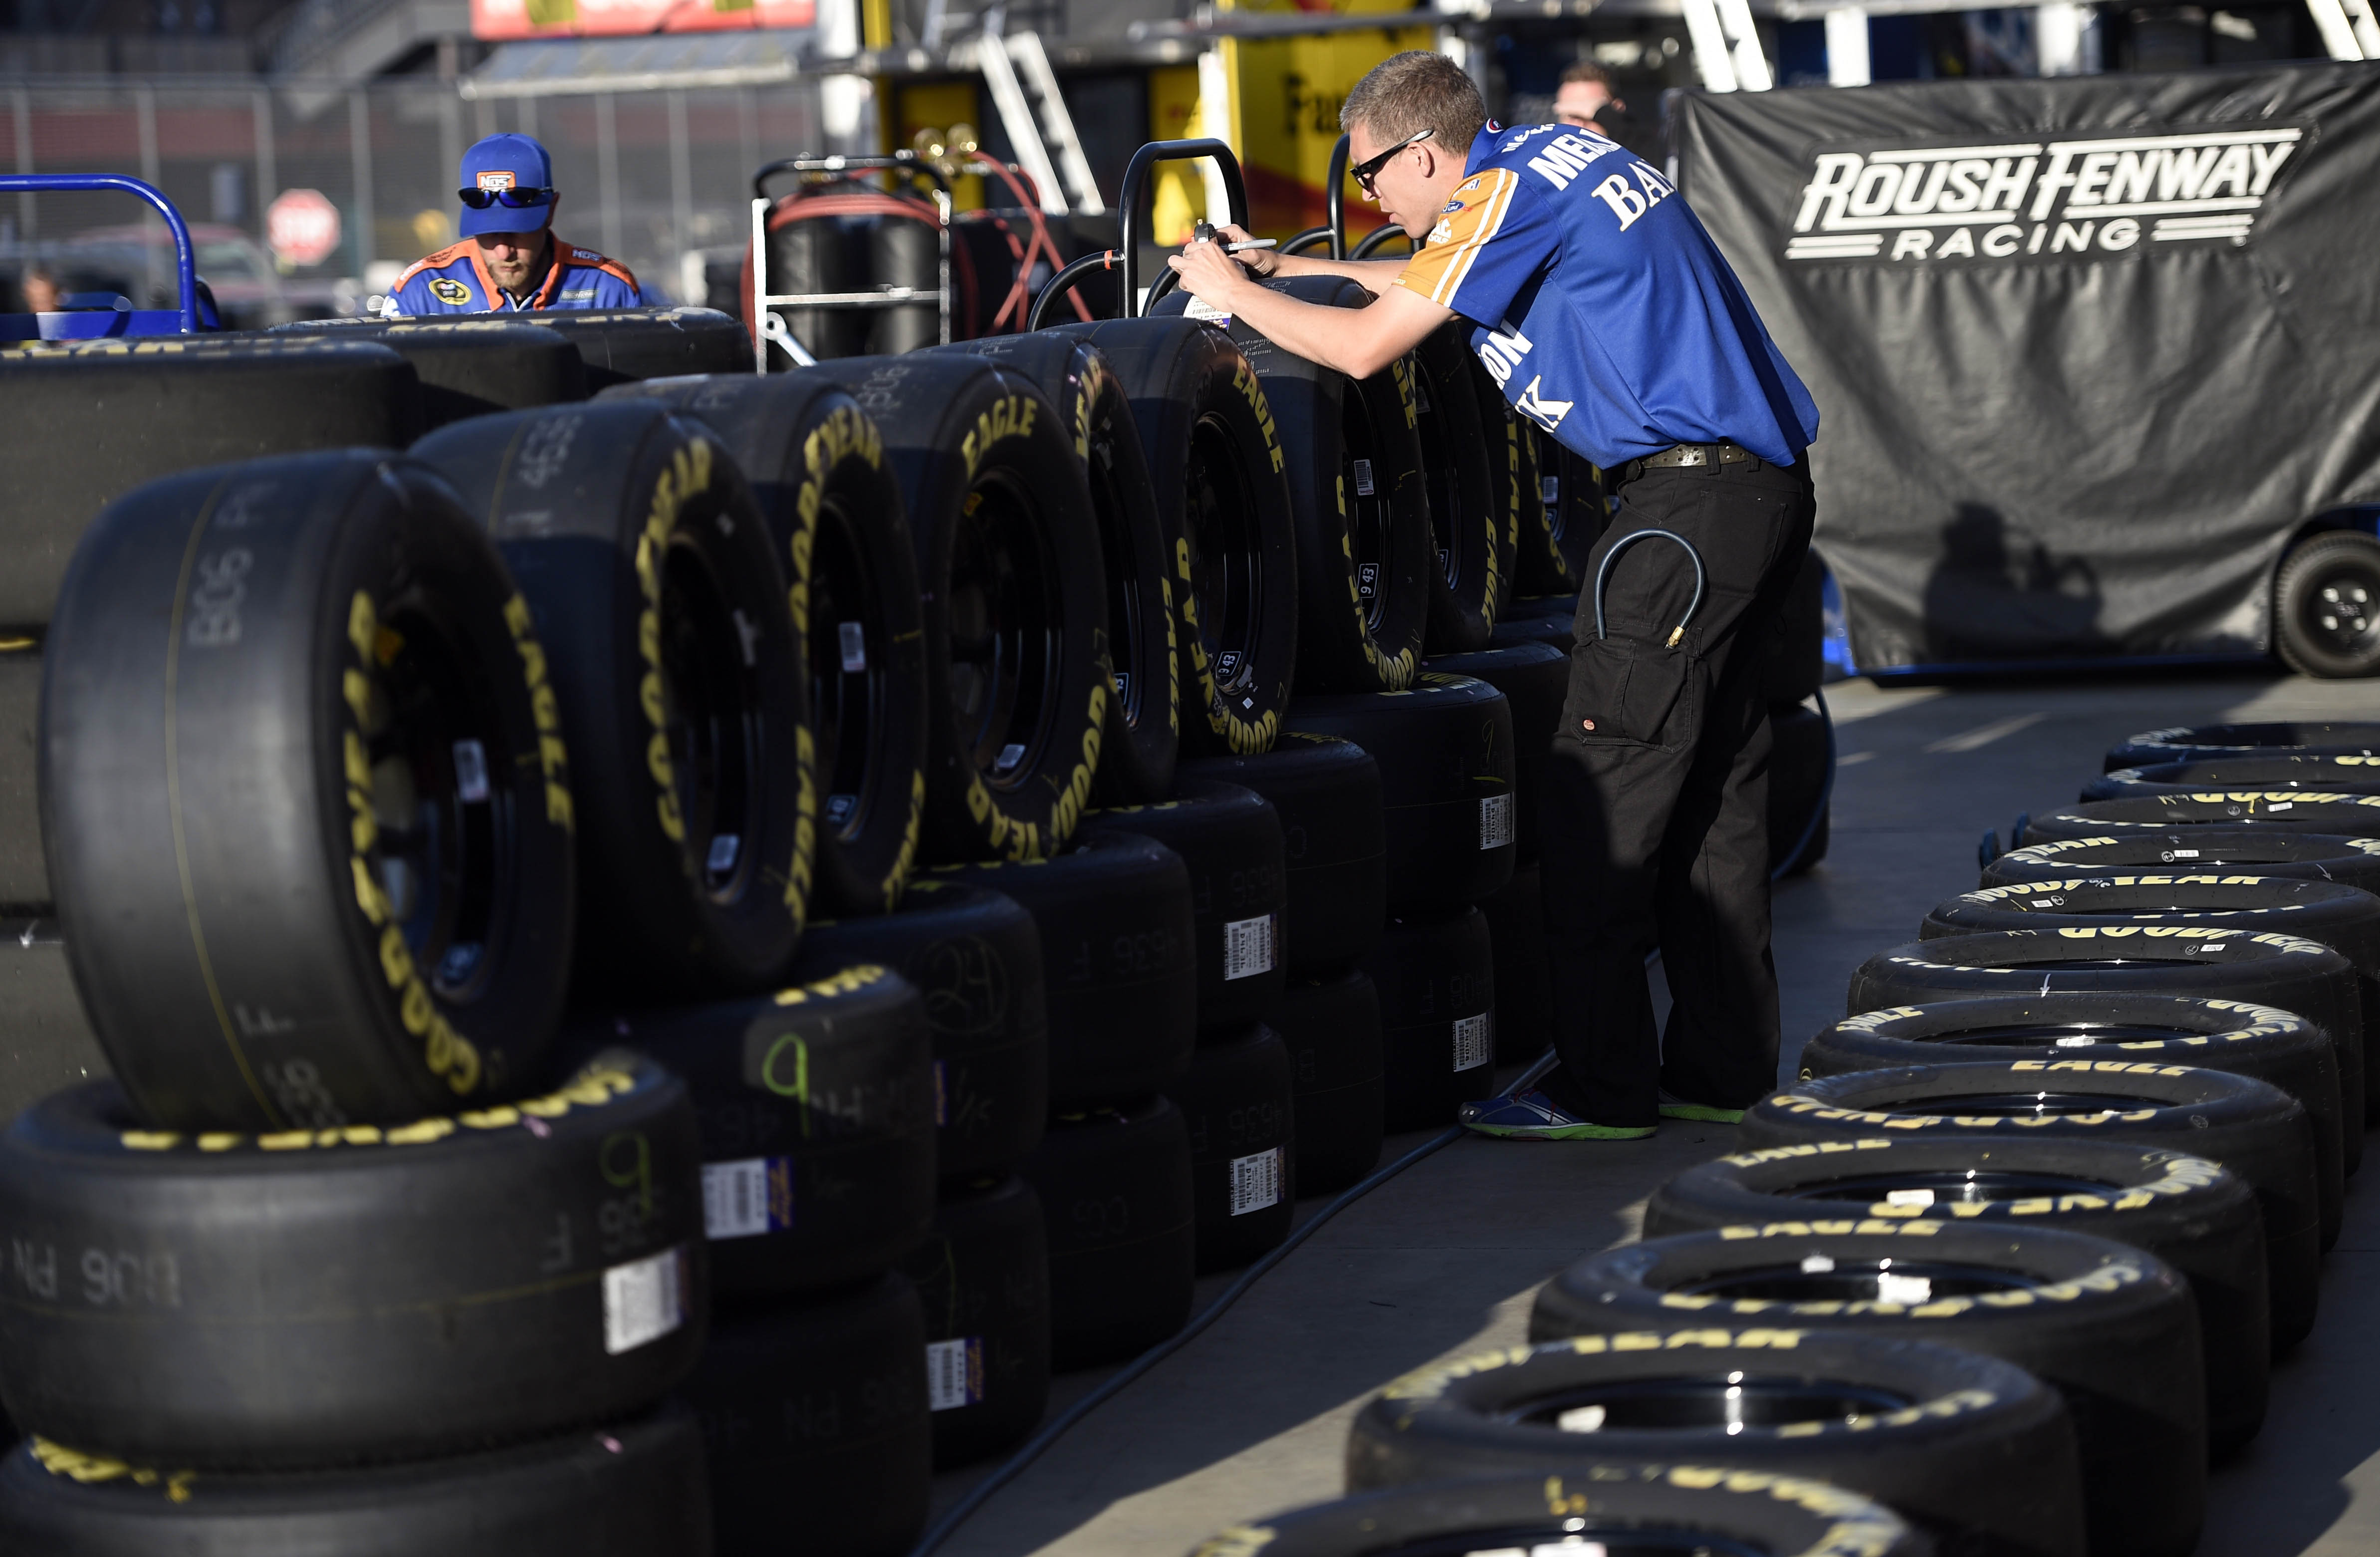 A technician checks tires during practice for the Auto Club 400. (USAT)